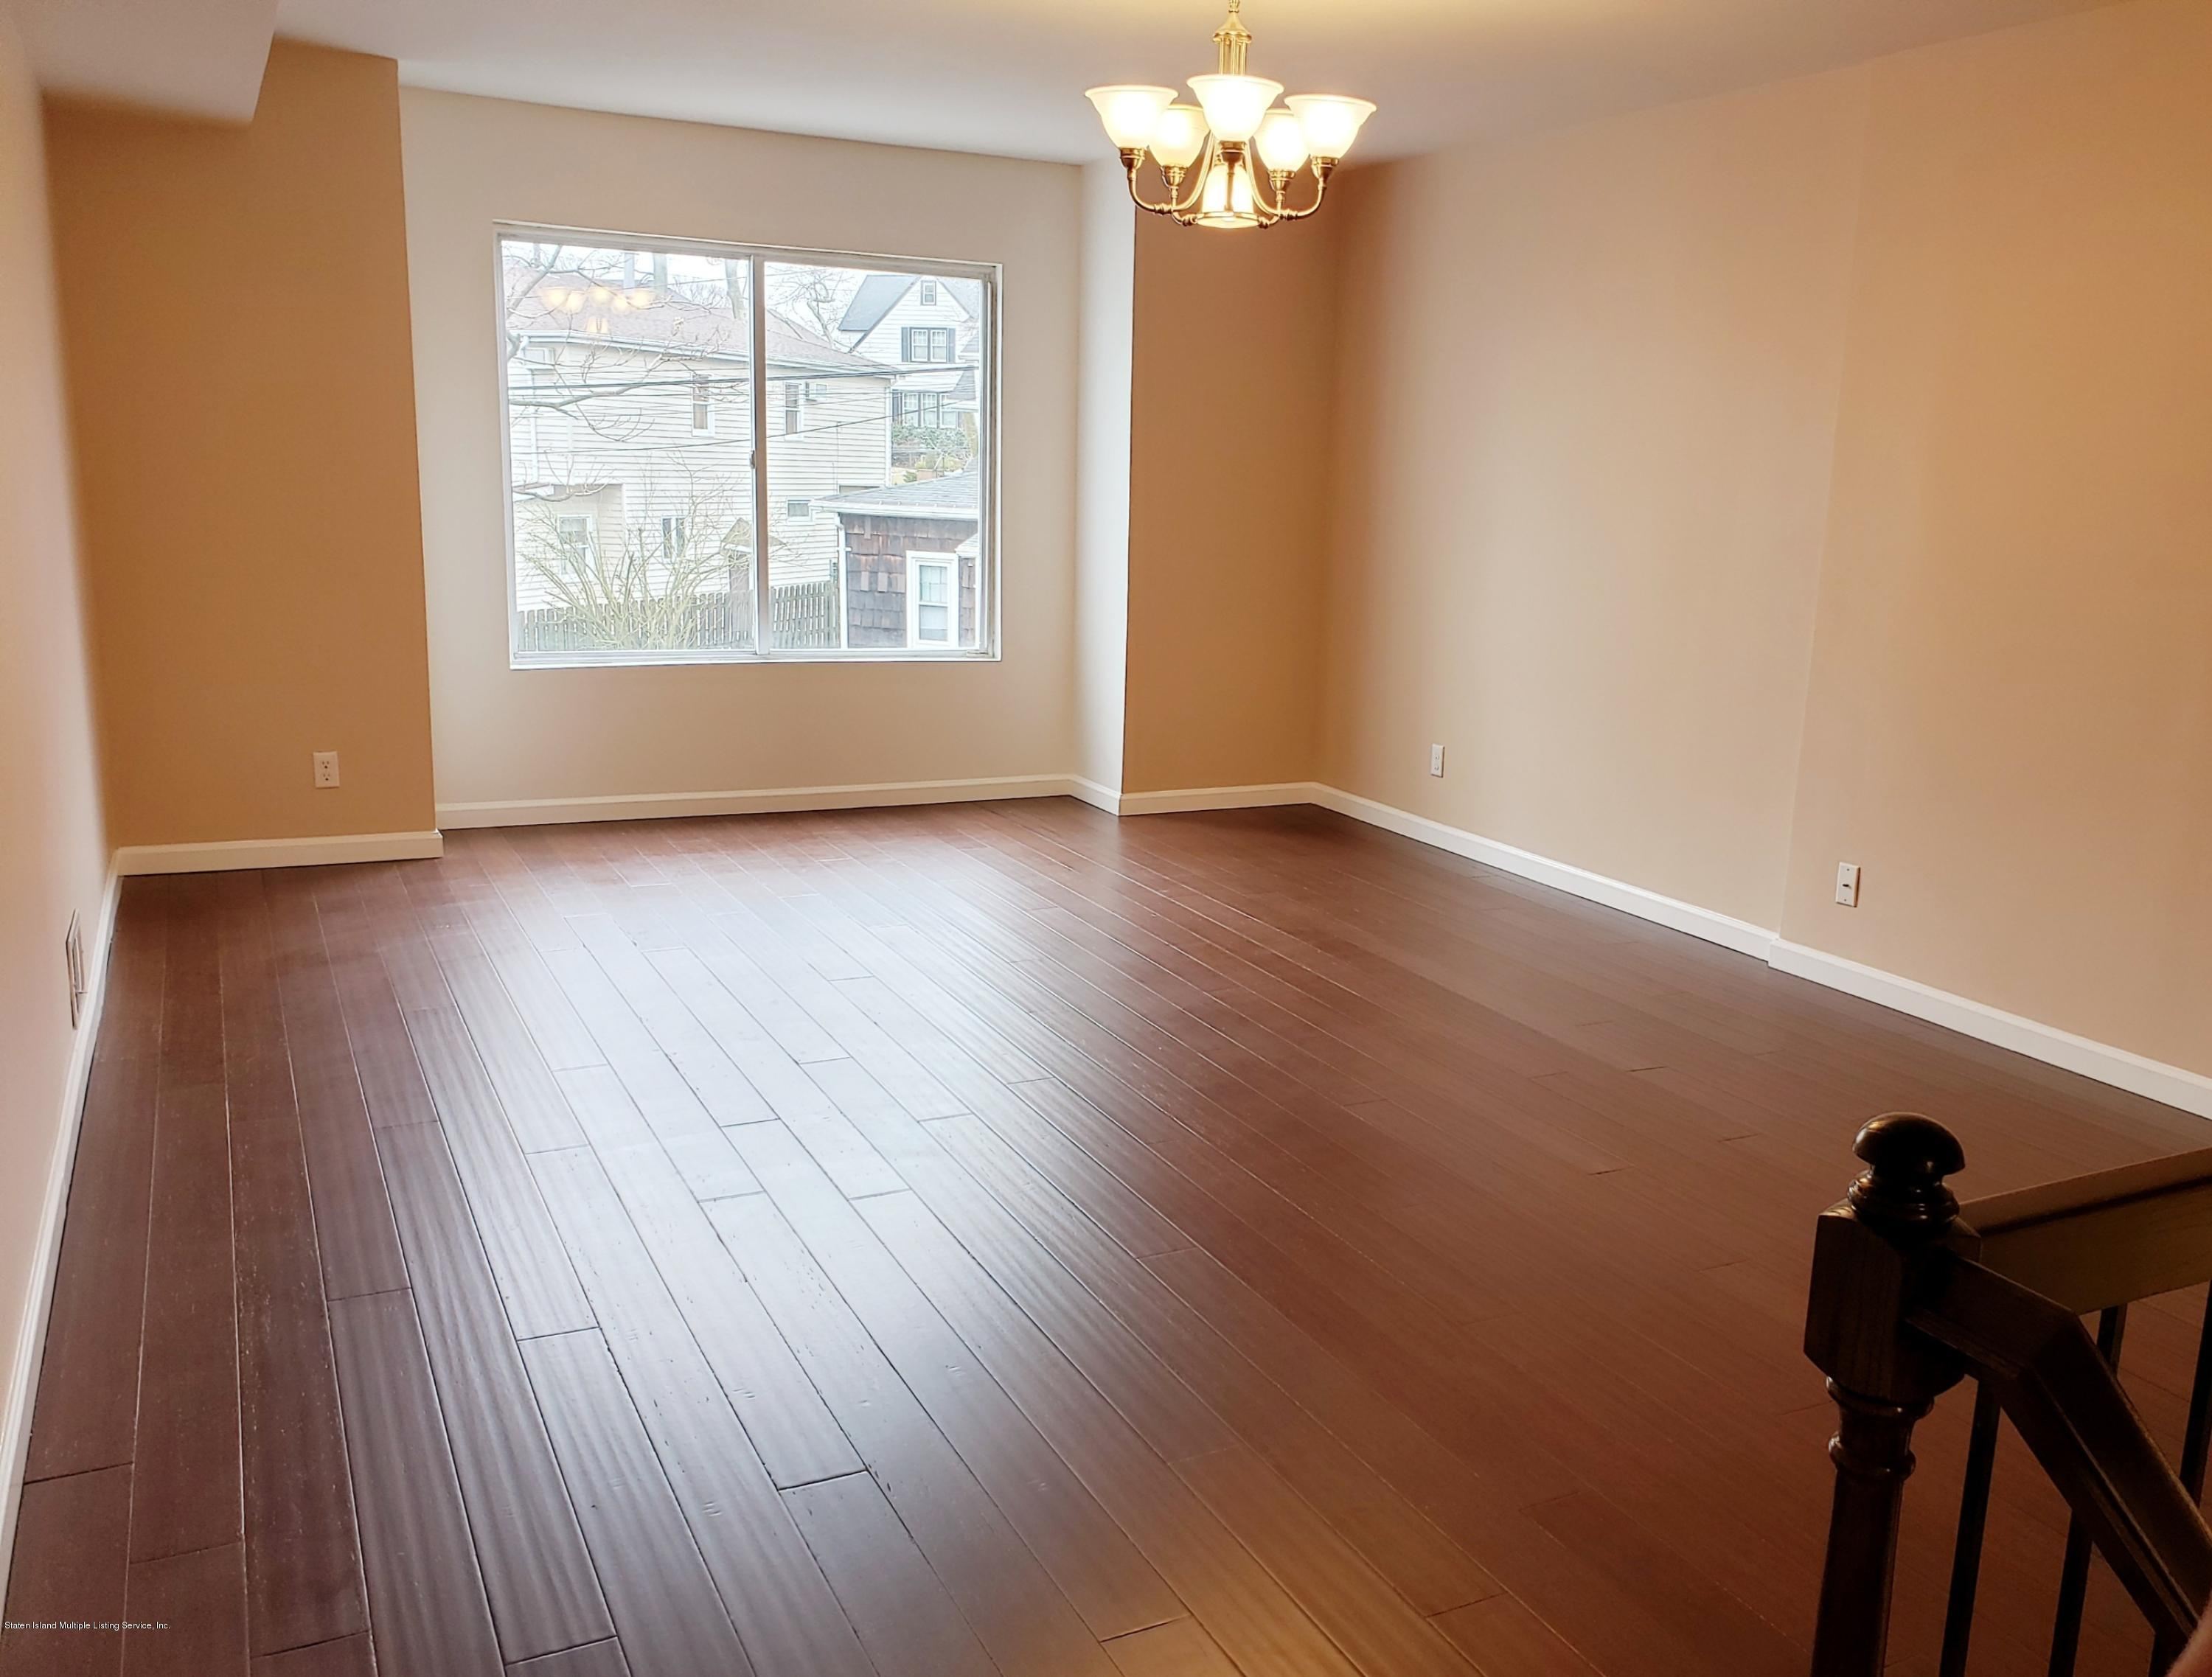 Single Family - Attached 31 Gail Court  Staten Island, NY 10306, MLS-1127035-4